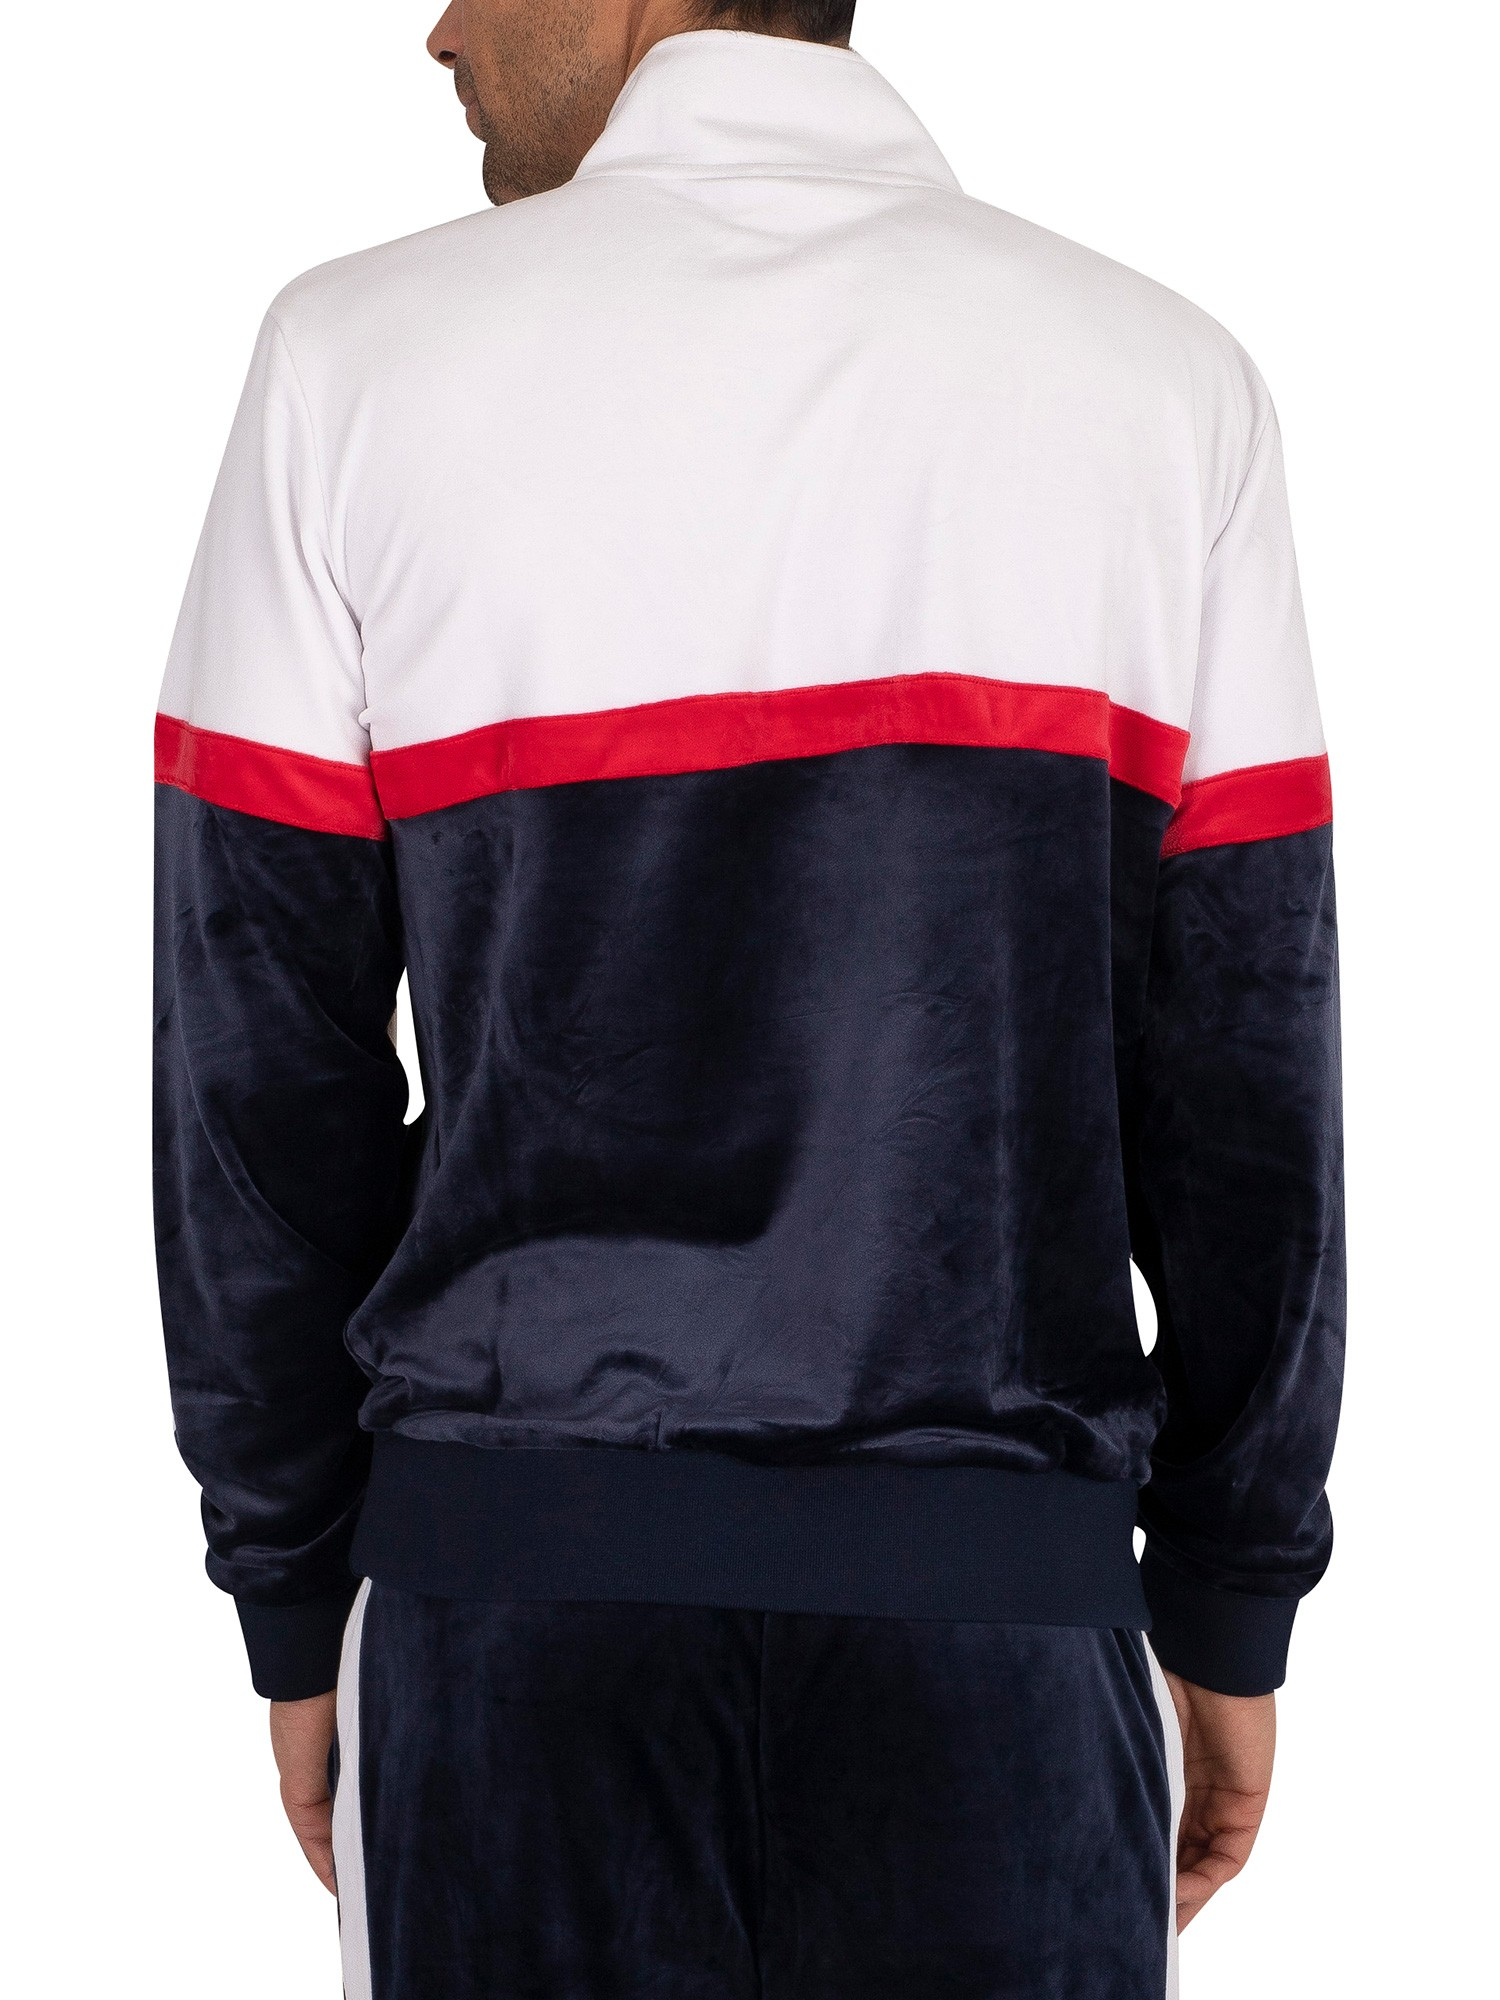 Fila Kane Velour 1/2 Zip Track Jacket - Peacoat/White/Red